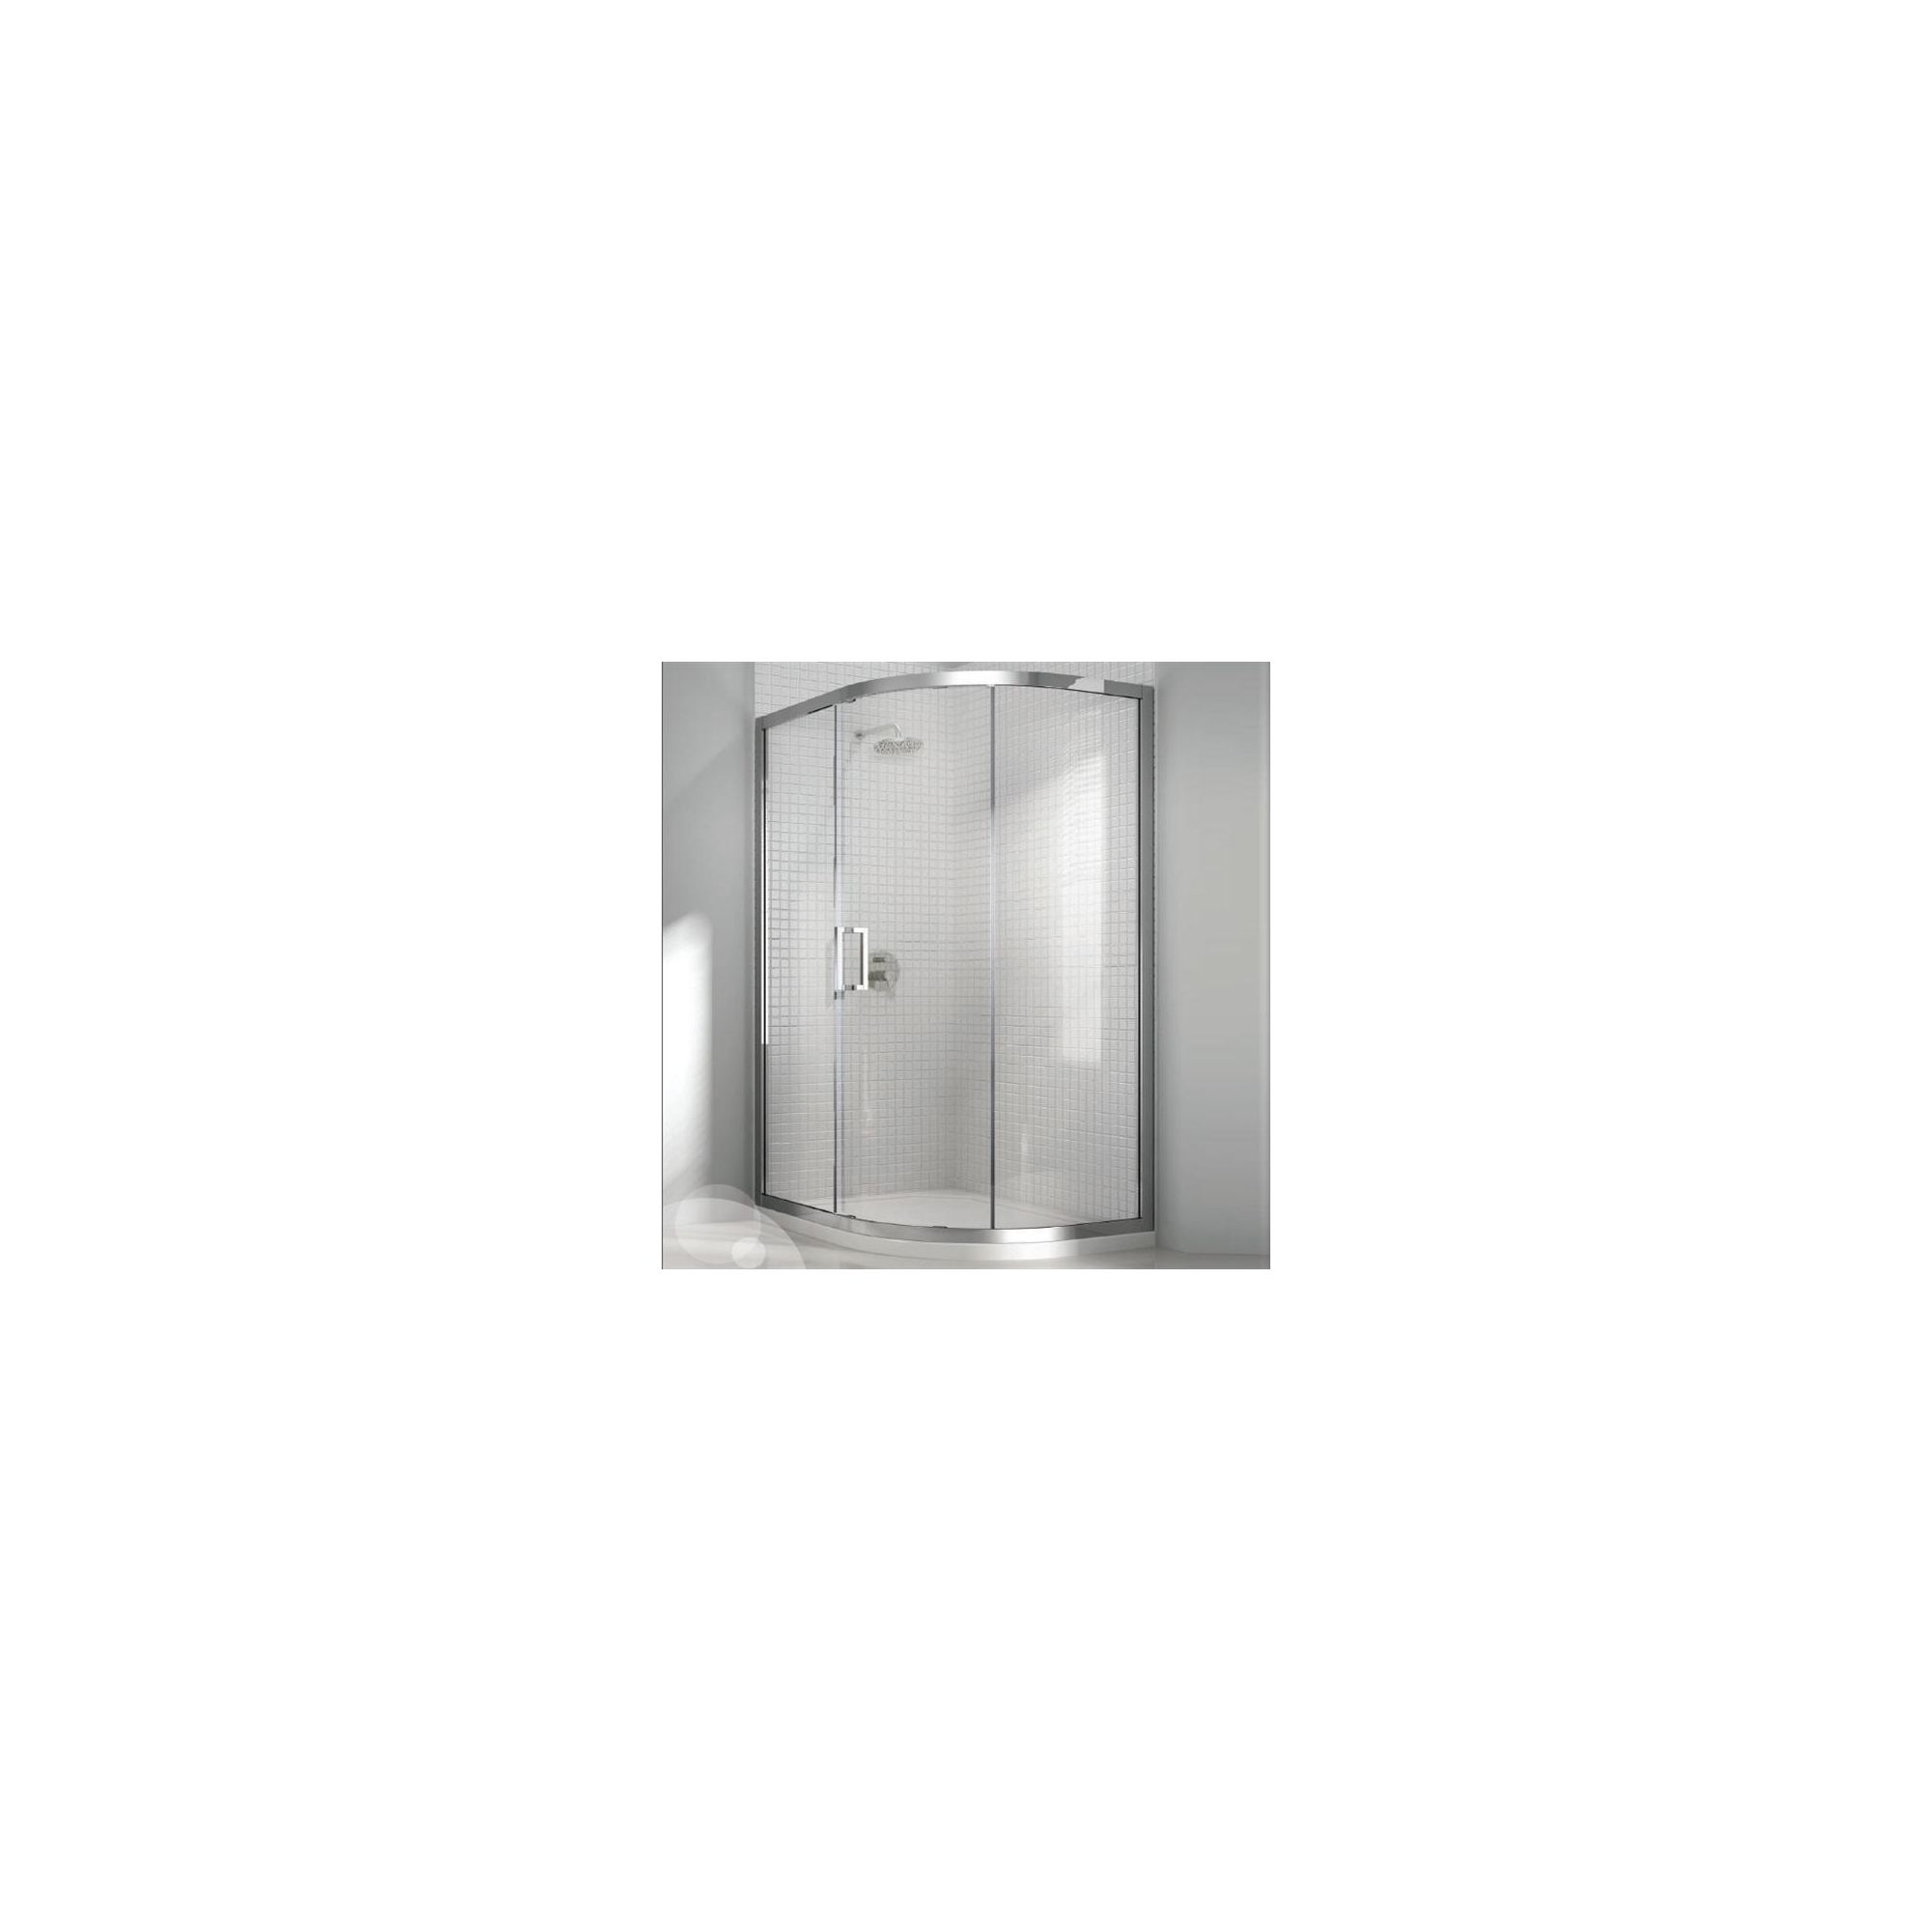 Merlyn Vivid Eight Offset Quadrant Shower Enclosure, 1200mm x 900mm, Right Handed, Low Profile Tray, 8mm Glass at Tesco Direct